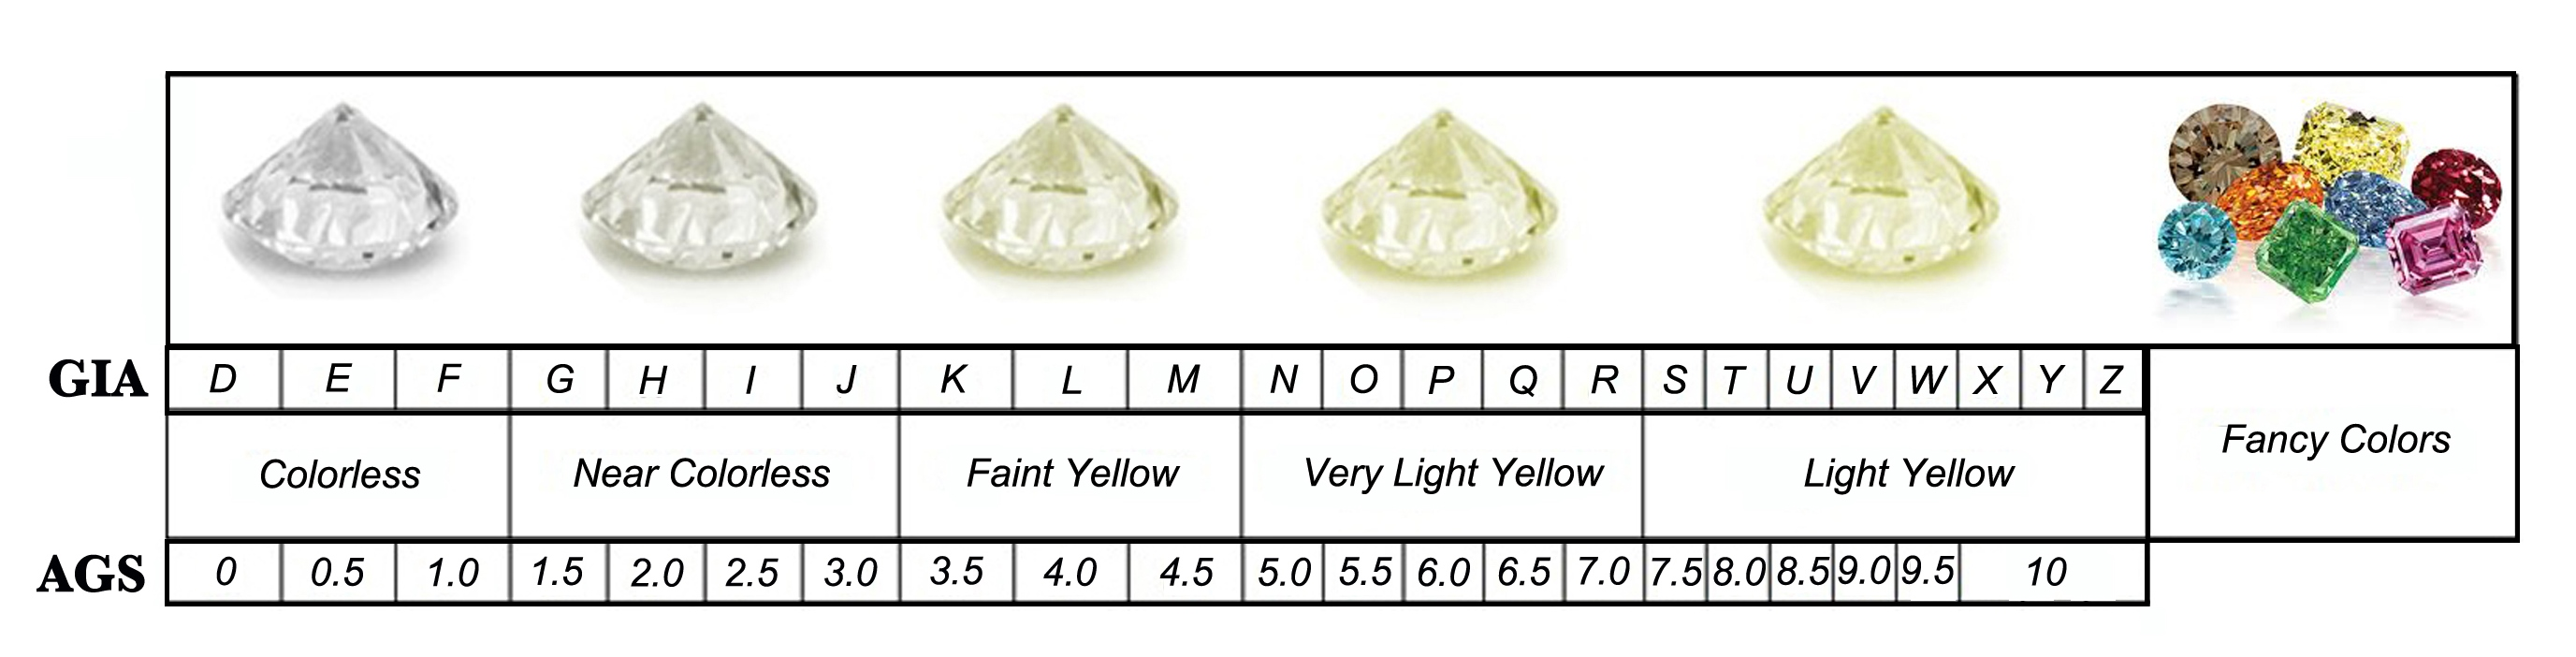 diamonds diamondchart clarity diamond flawless iidgr chart